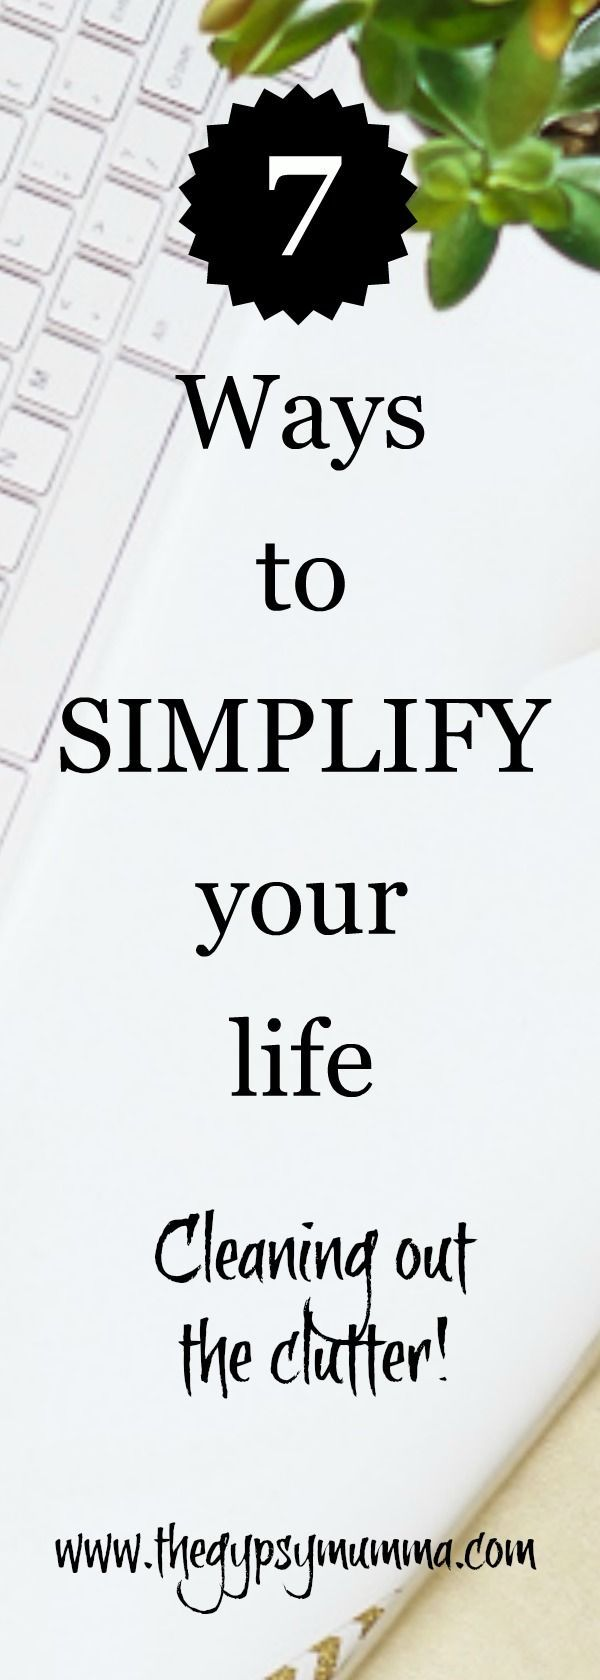 Clear out the clutter with my 7 easy steps on simplifying your life. Mindfulness #Simplify